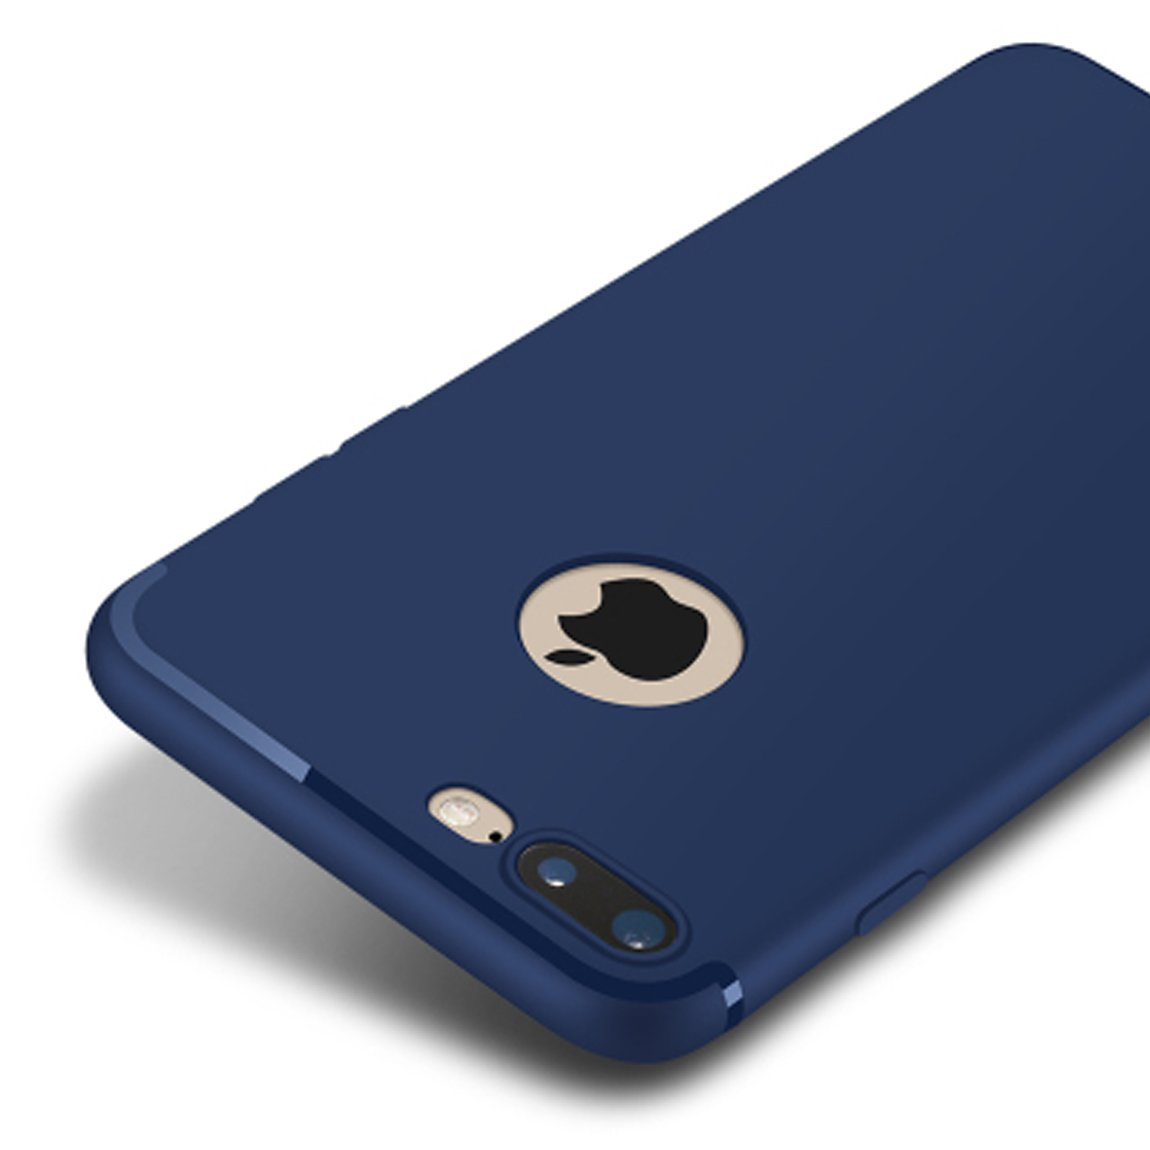 Grind Arenaceous Case For Iphone 7 Plus-[BBY@] Blue